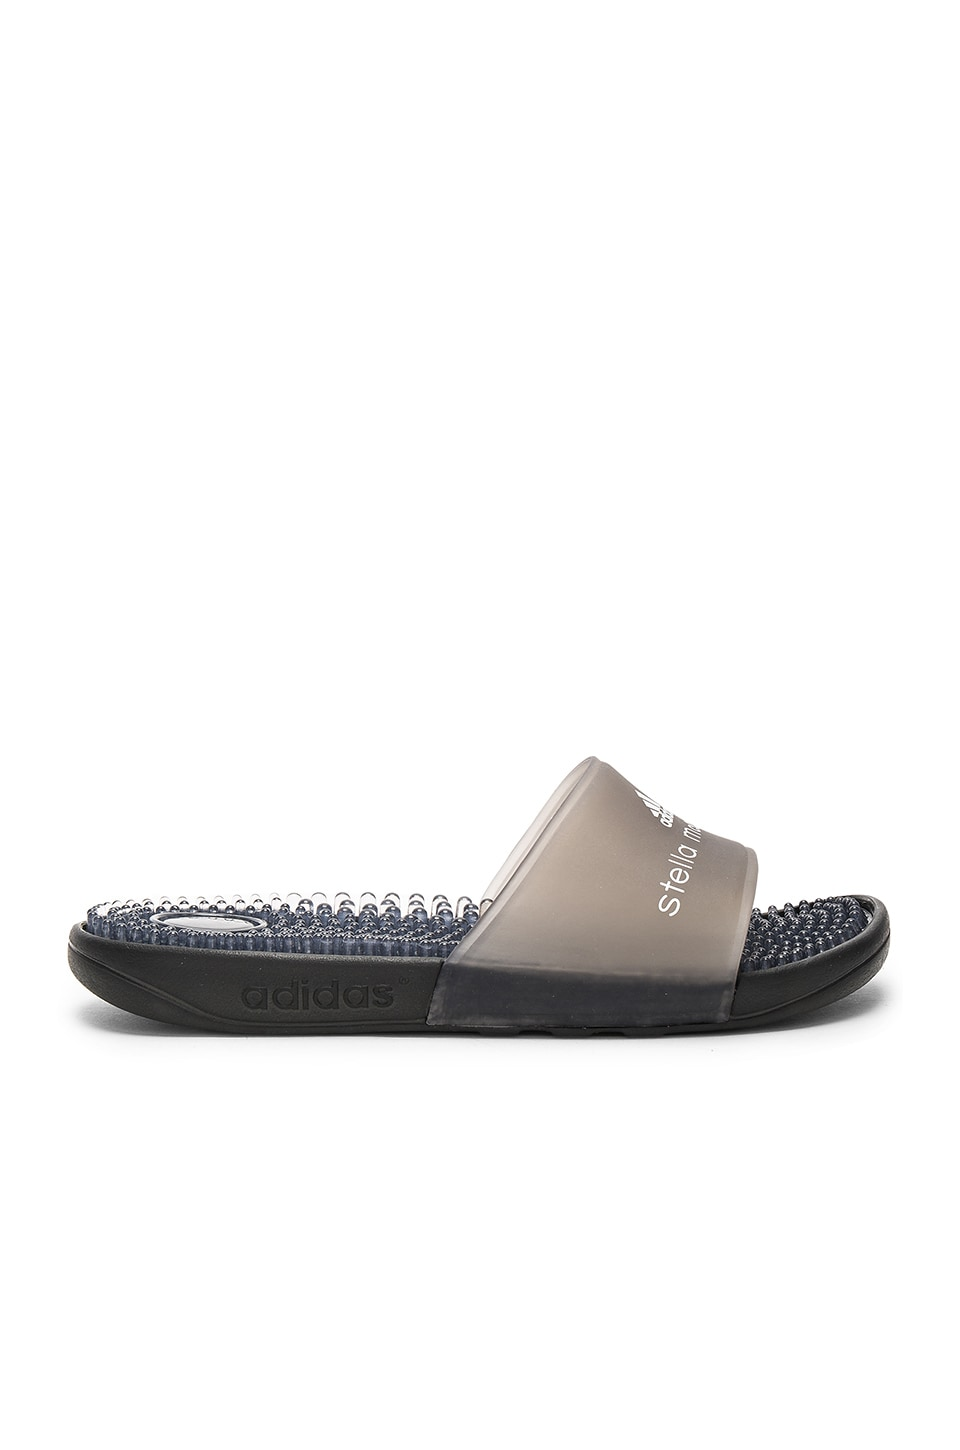 adidas by Stella McCartney Adissage Recovery Slide in Core Black & White